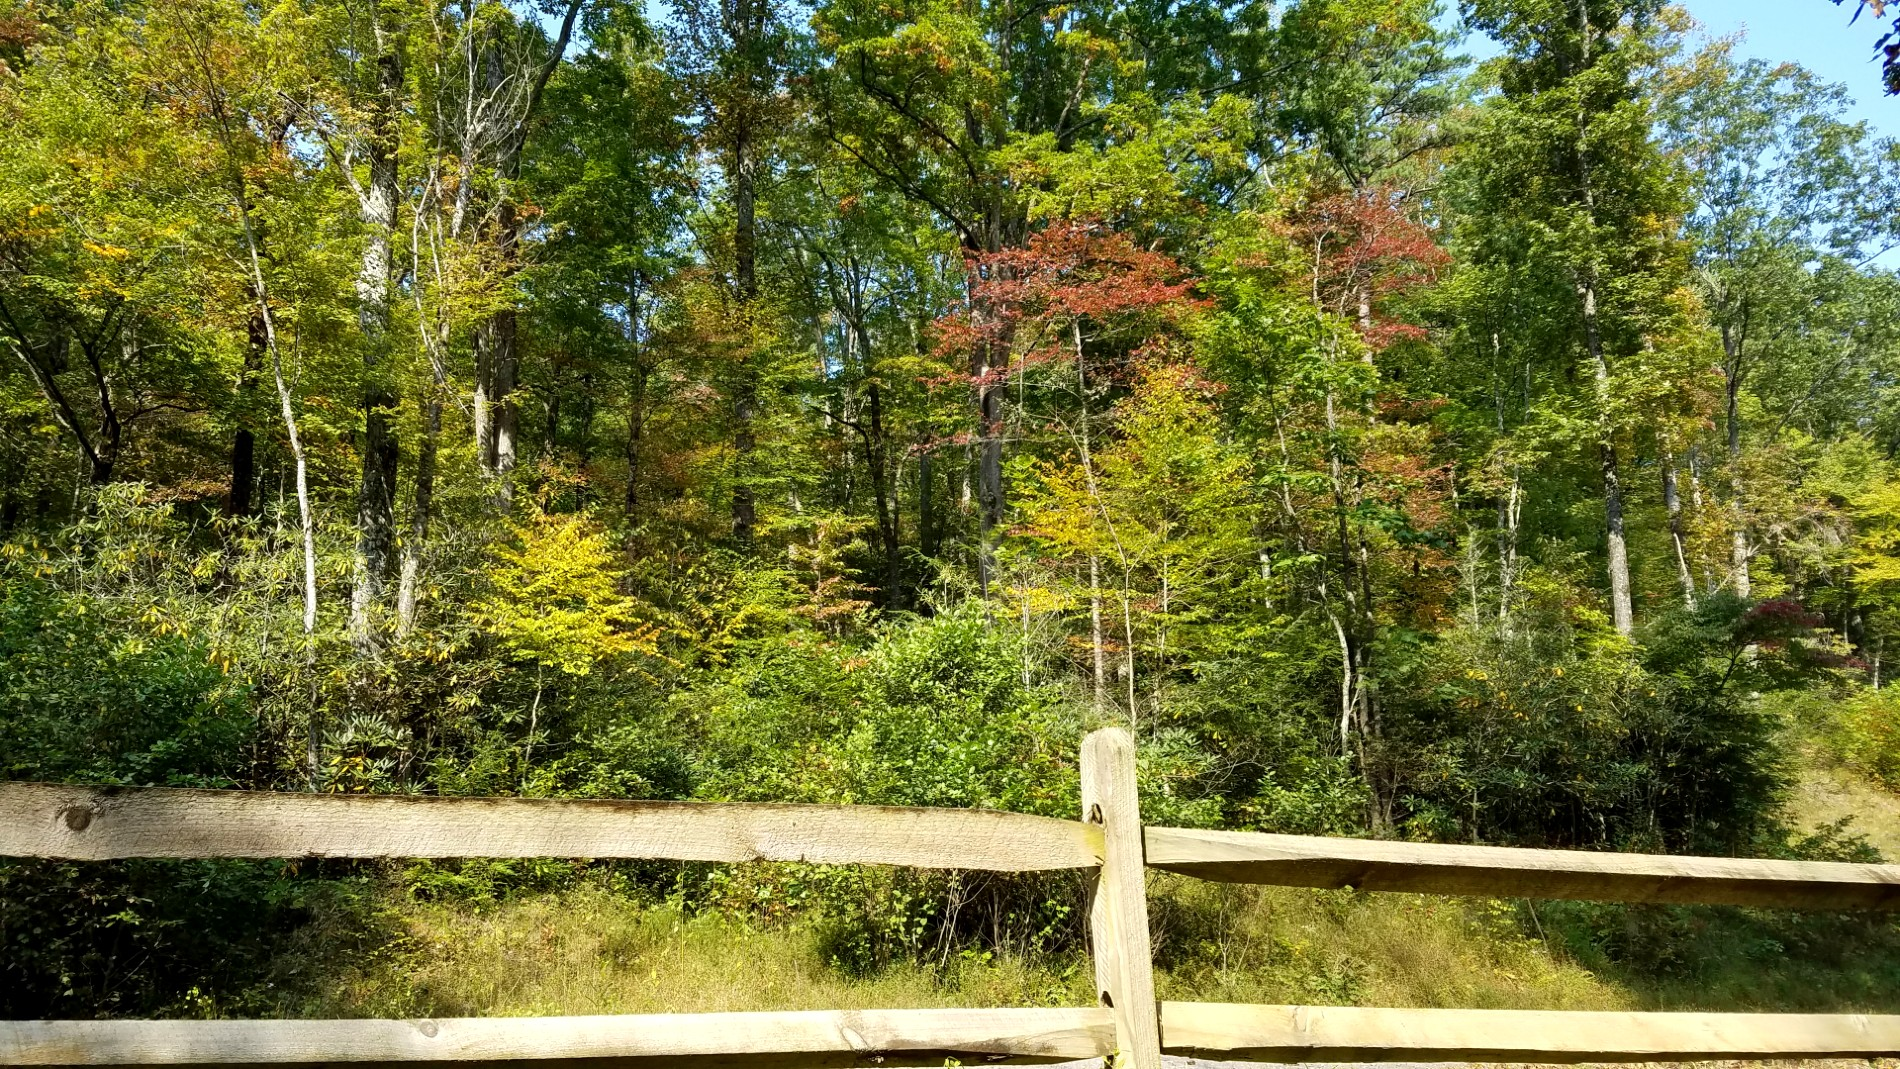 Split rail fence with tall trees behind it, some of which are showing fall foliage color